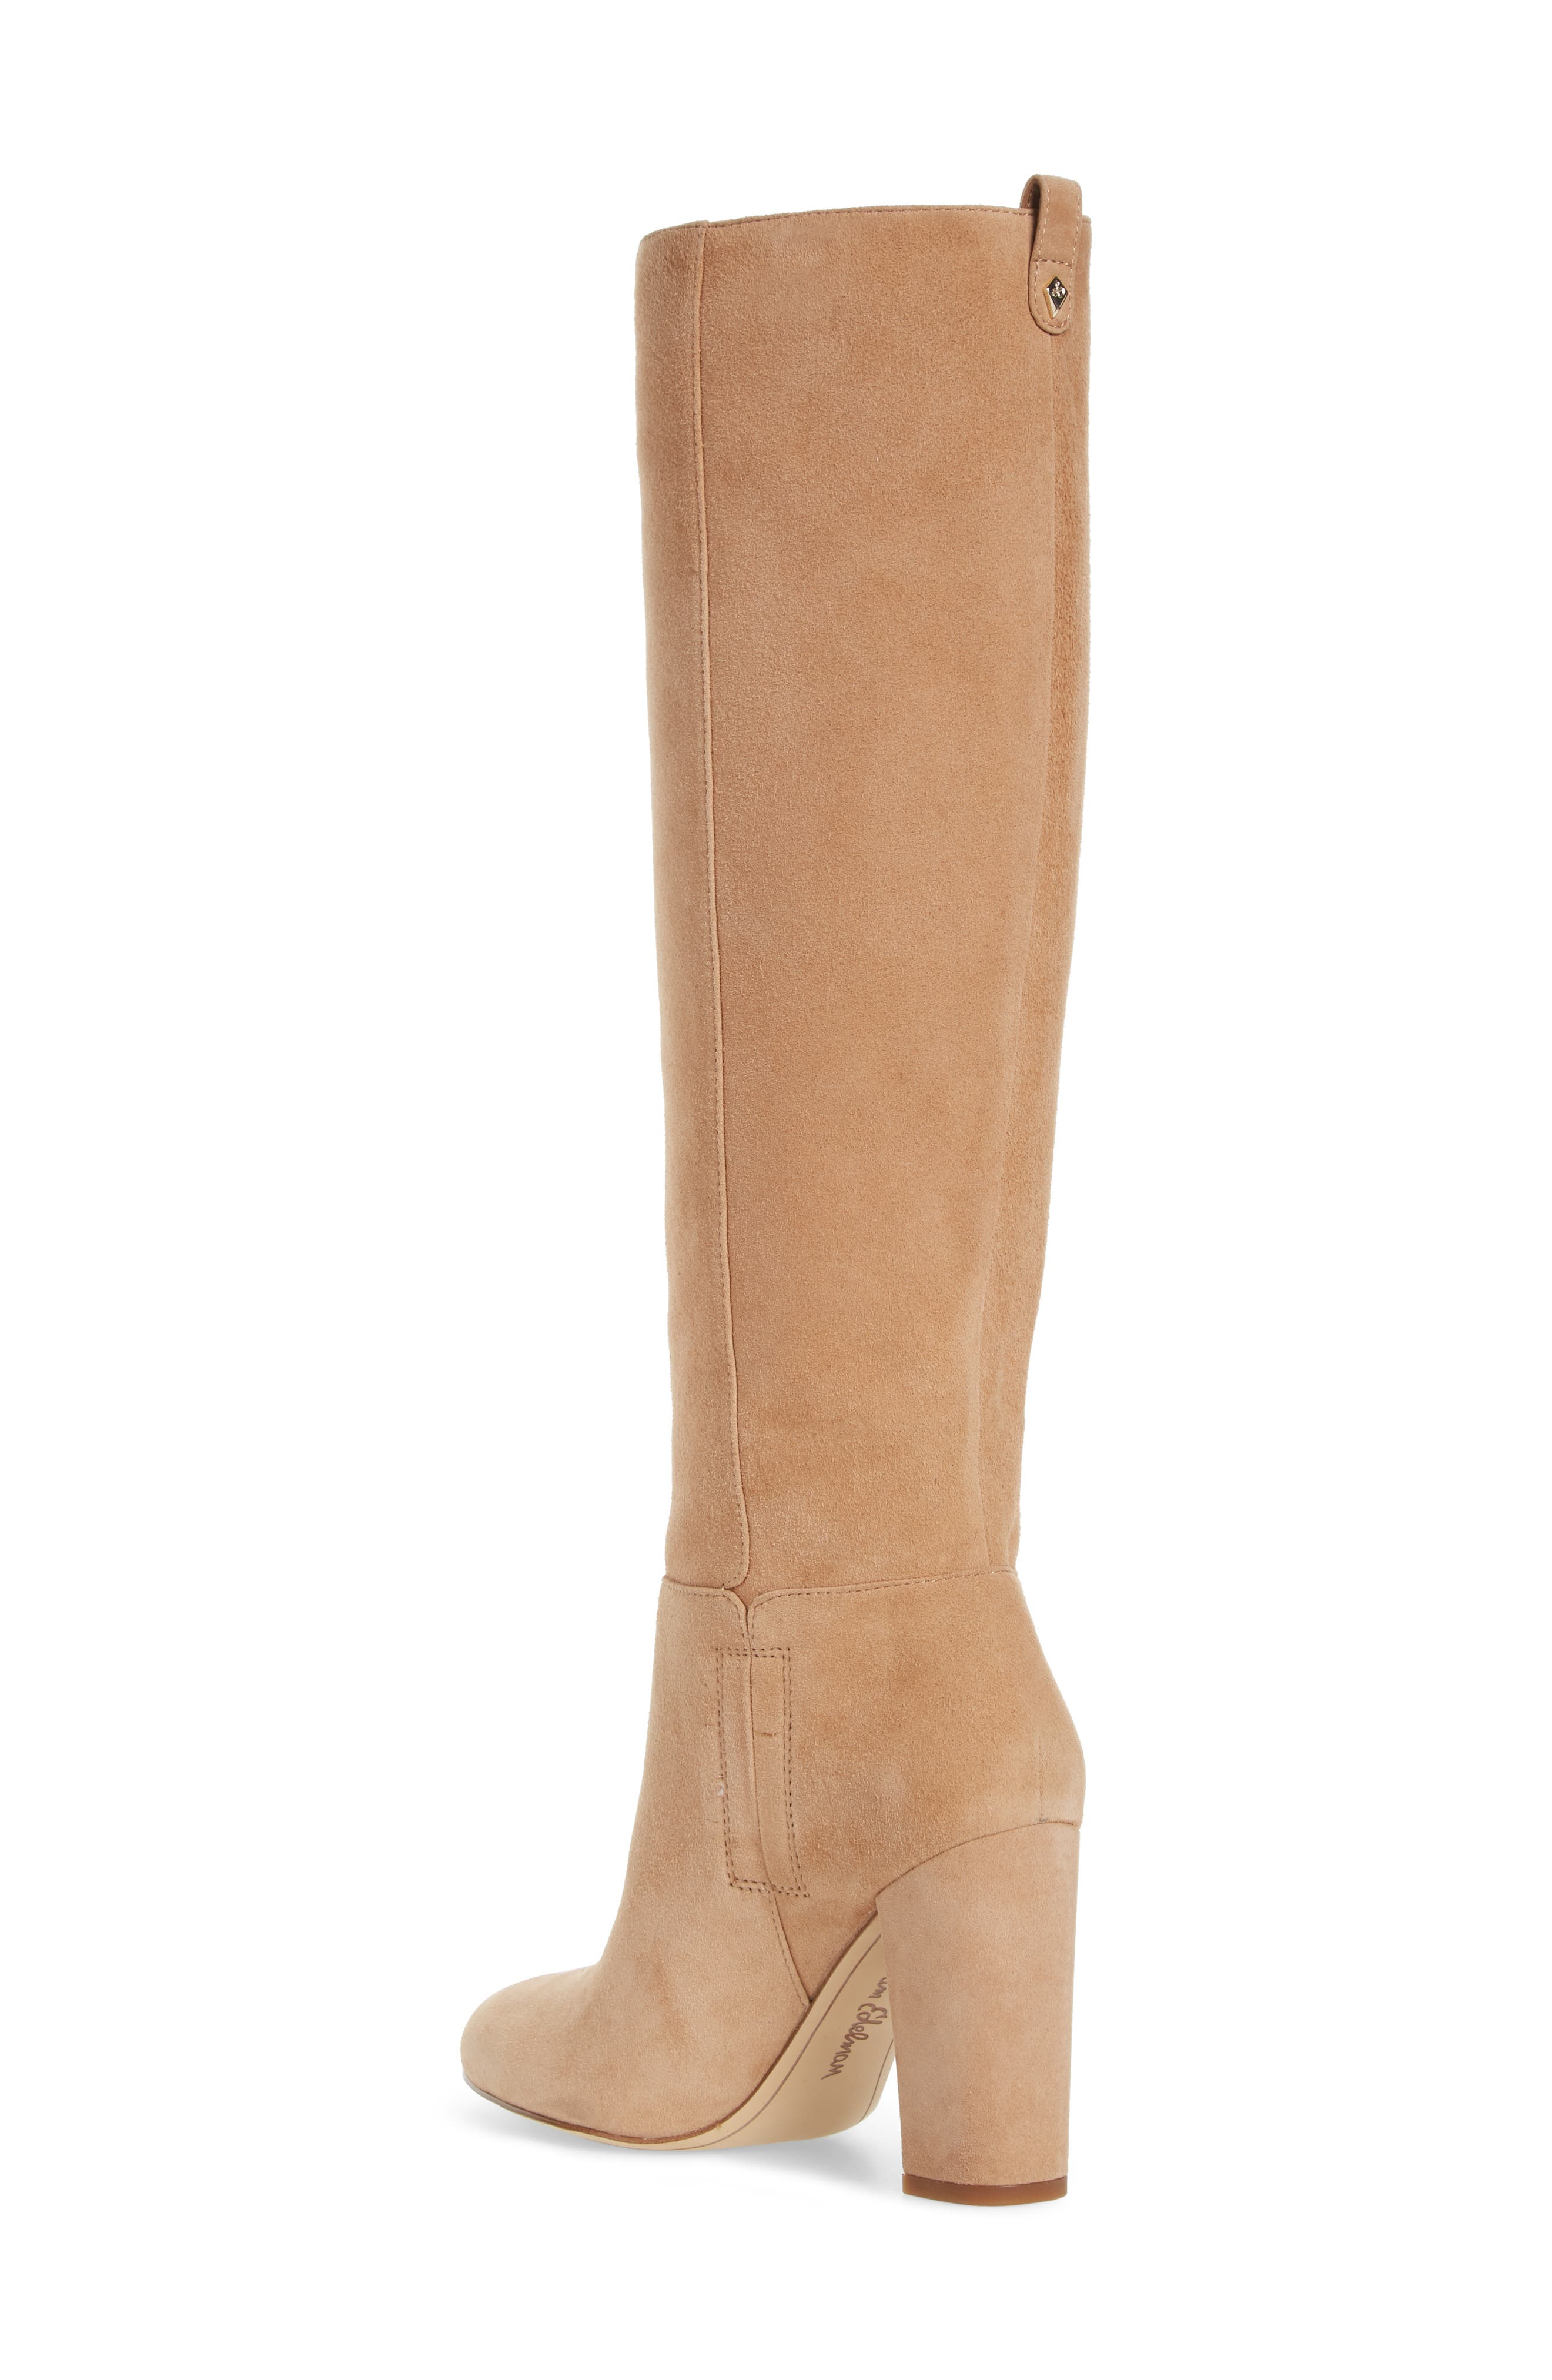 Caprice Knee-High Boot,                             Alternate thumbnail 2, color,                             GOLDEN CARAMEL SUEDE